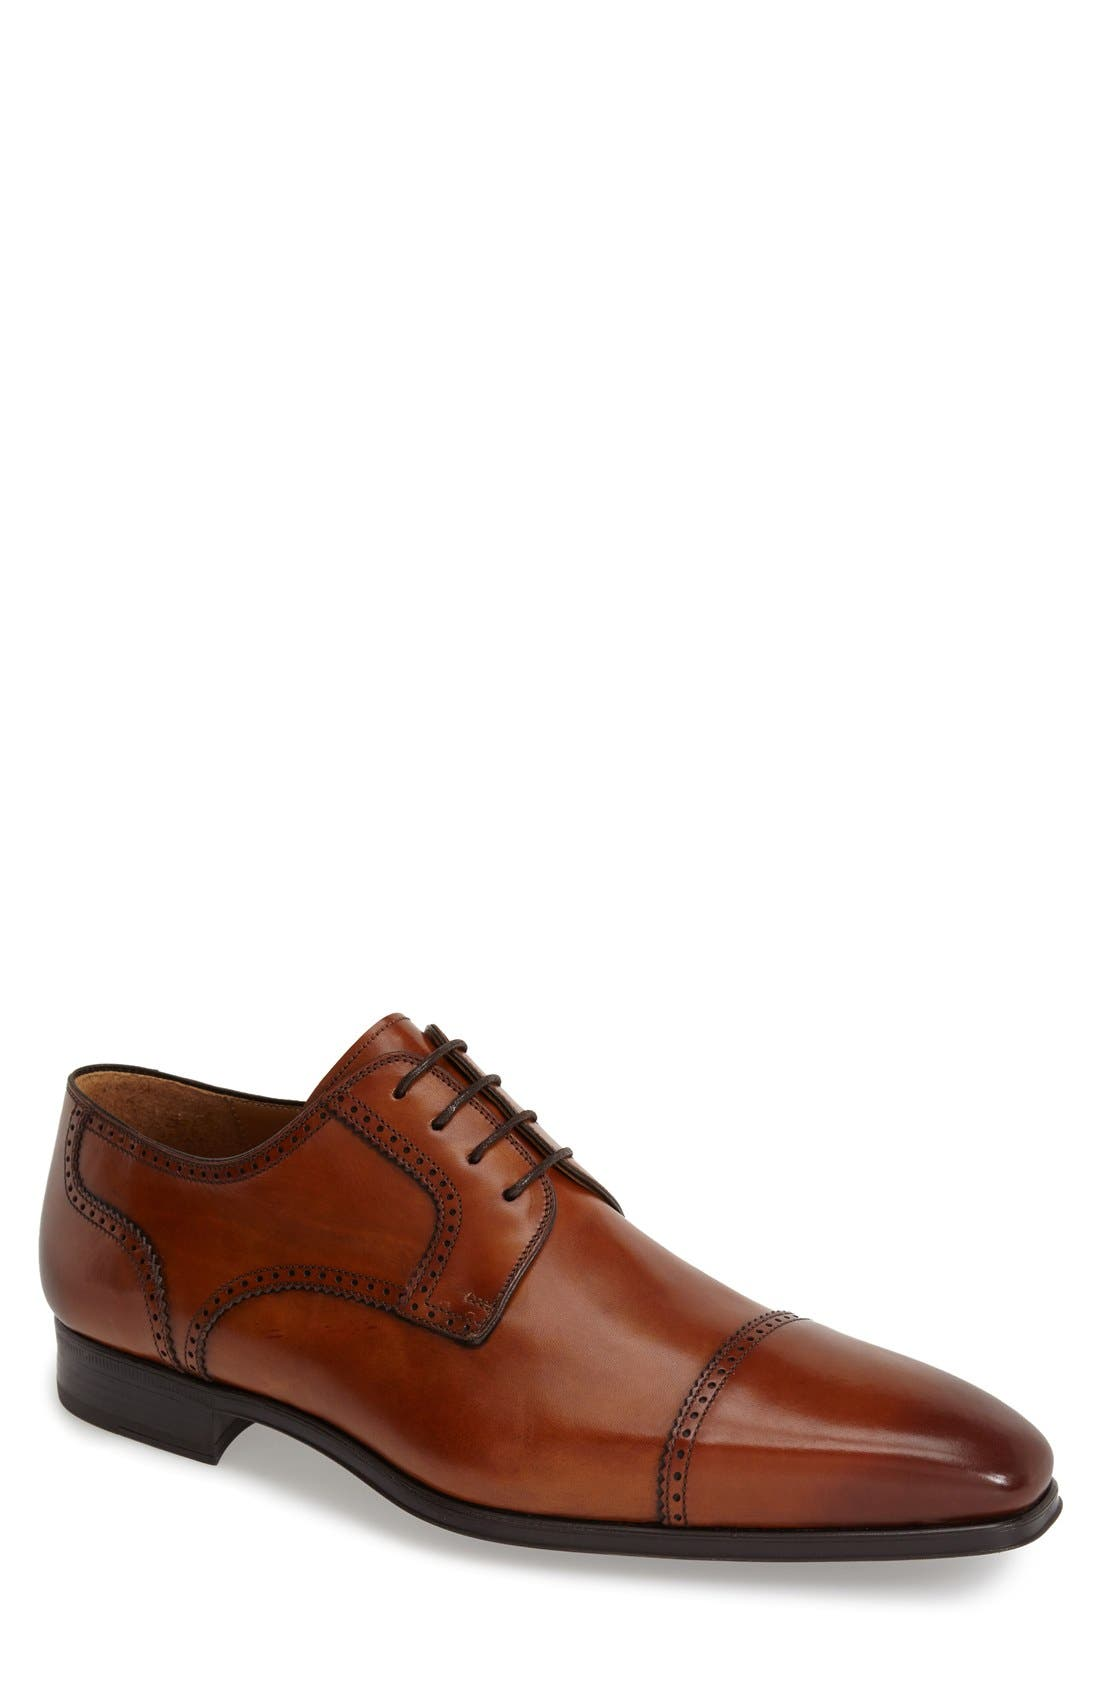 MAGNANNI, 'Carlito' Cap Toe Derby, Main thumbnail 1, color, 219